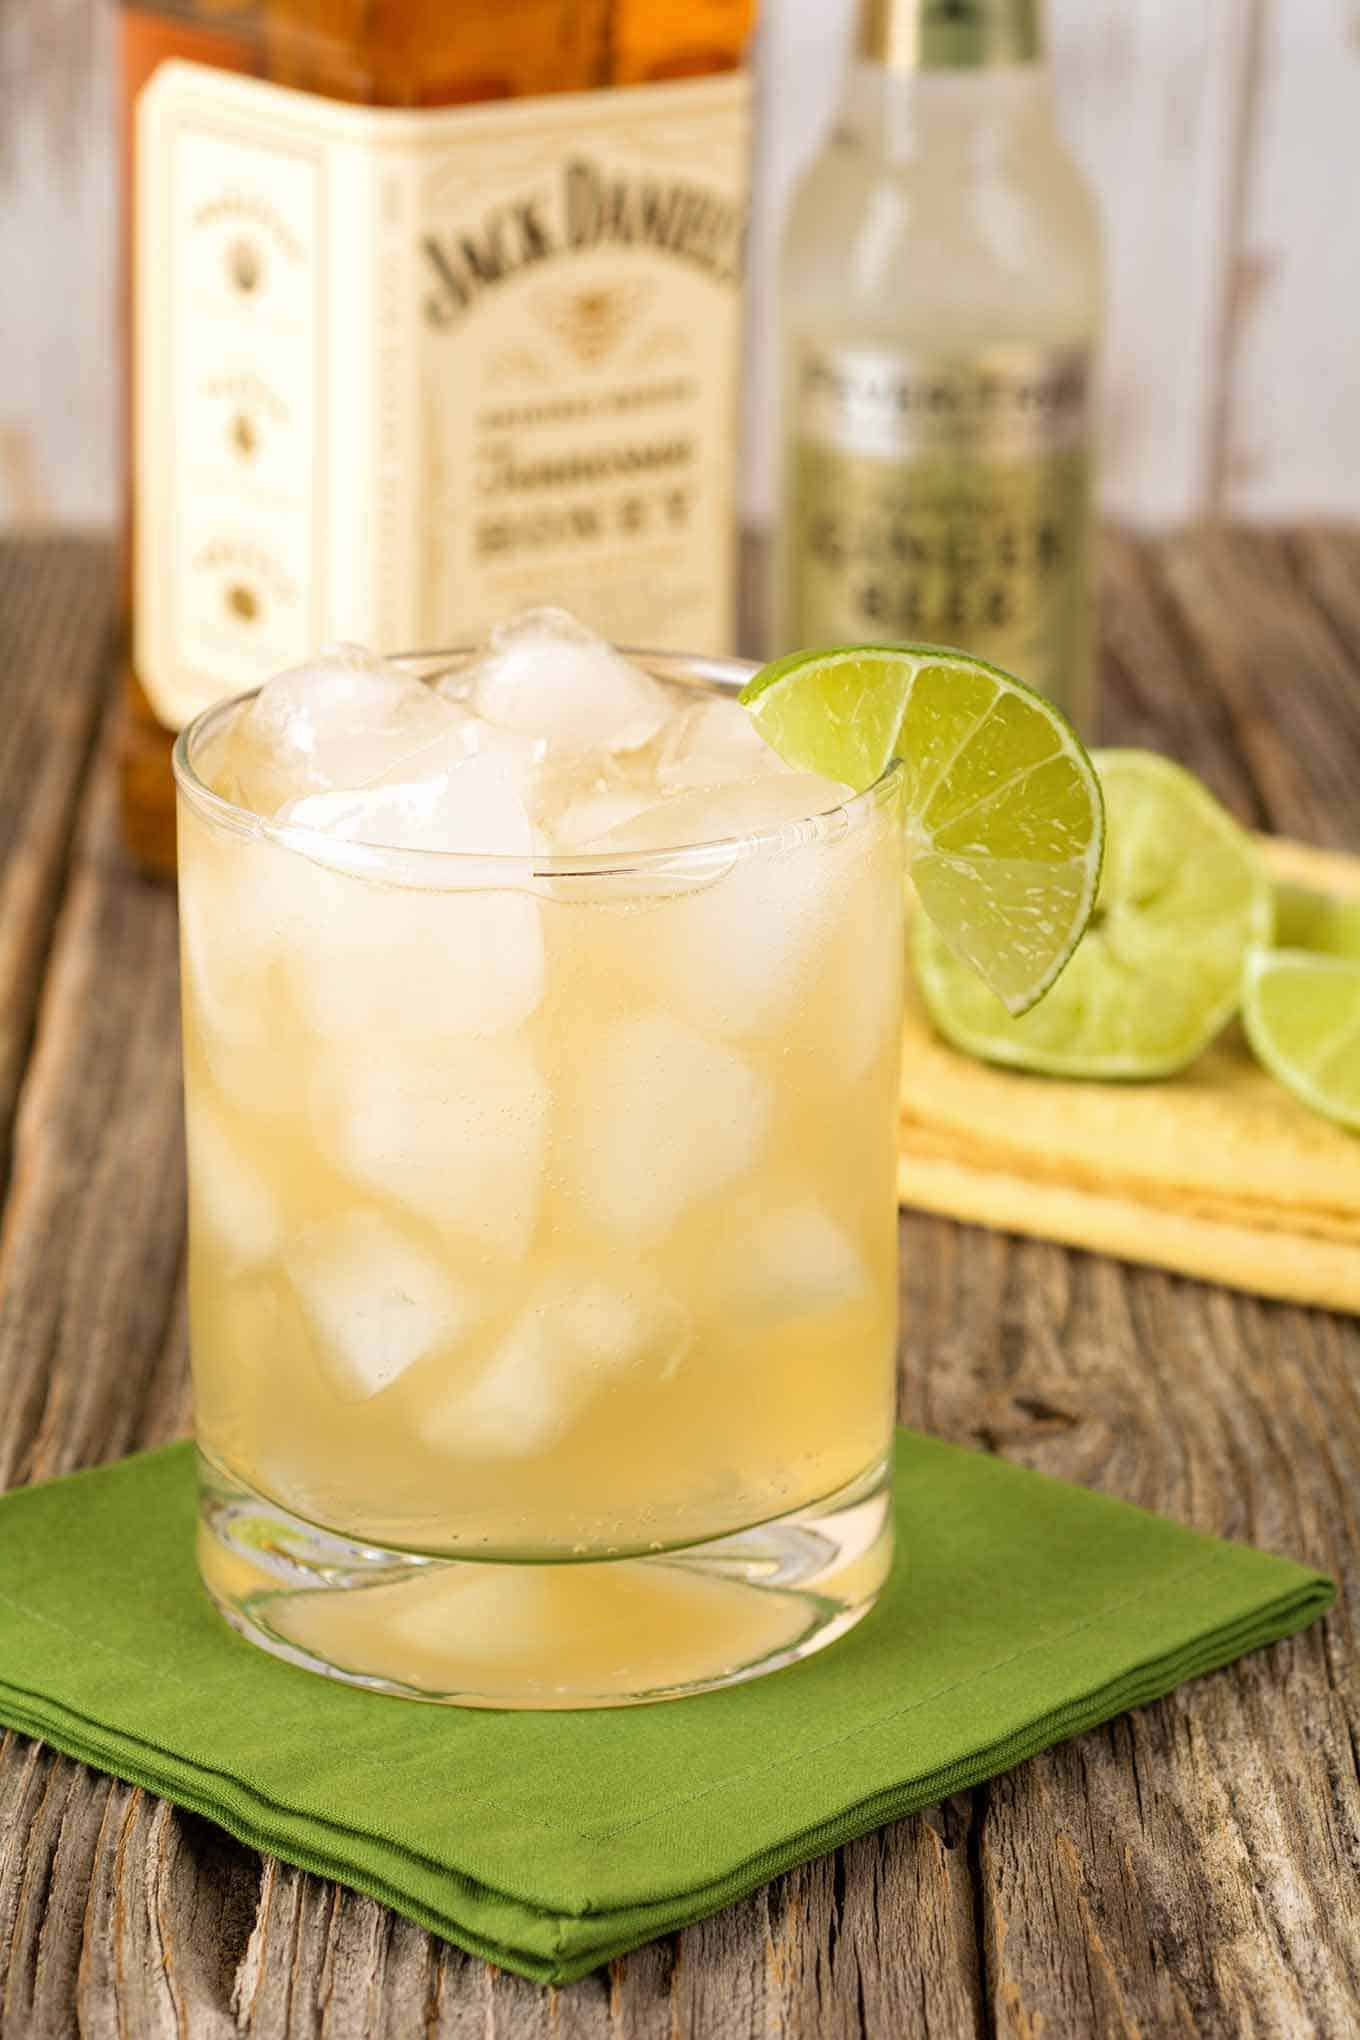 A Tennessee Honey Cocktail in a glass garnished with a lime wedge